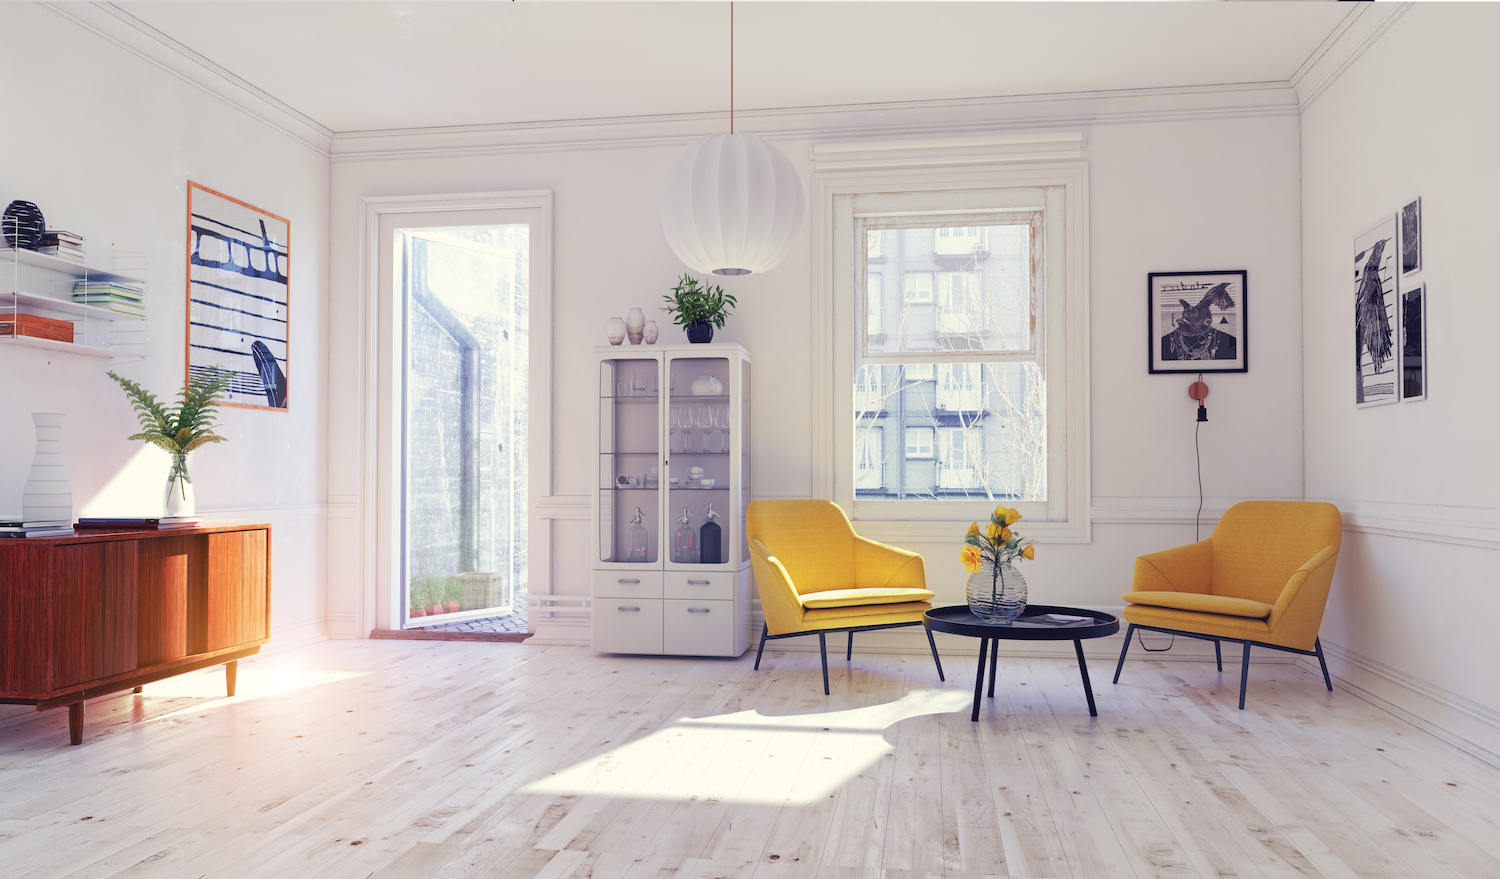 Lagom Is Pinterest's Biggest Home Decor Trend, Not Hygge